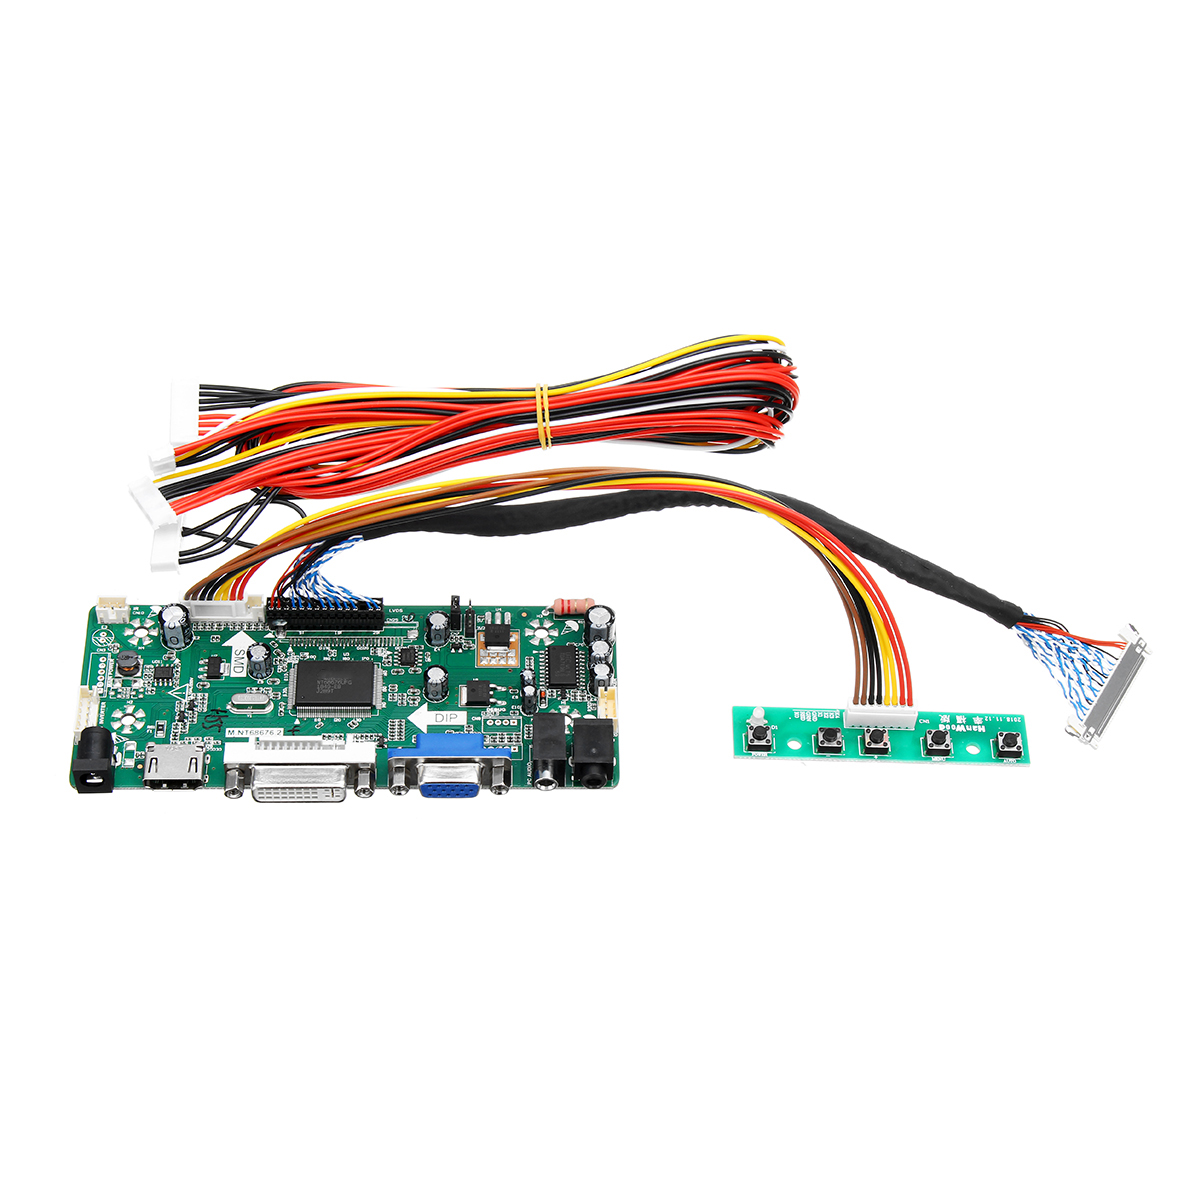 M.NT68676.2A LCD Monitor Controller Board Converter Driver Kit HDMI DVI VGA for 1920x1200 LM240WU2-SLB2